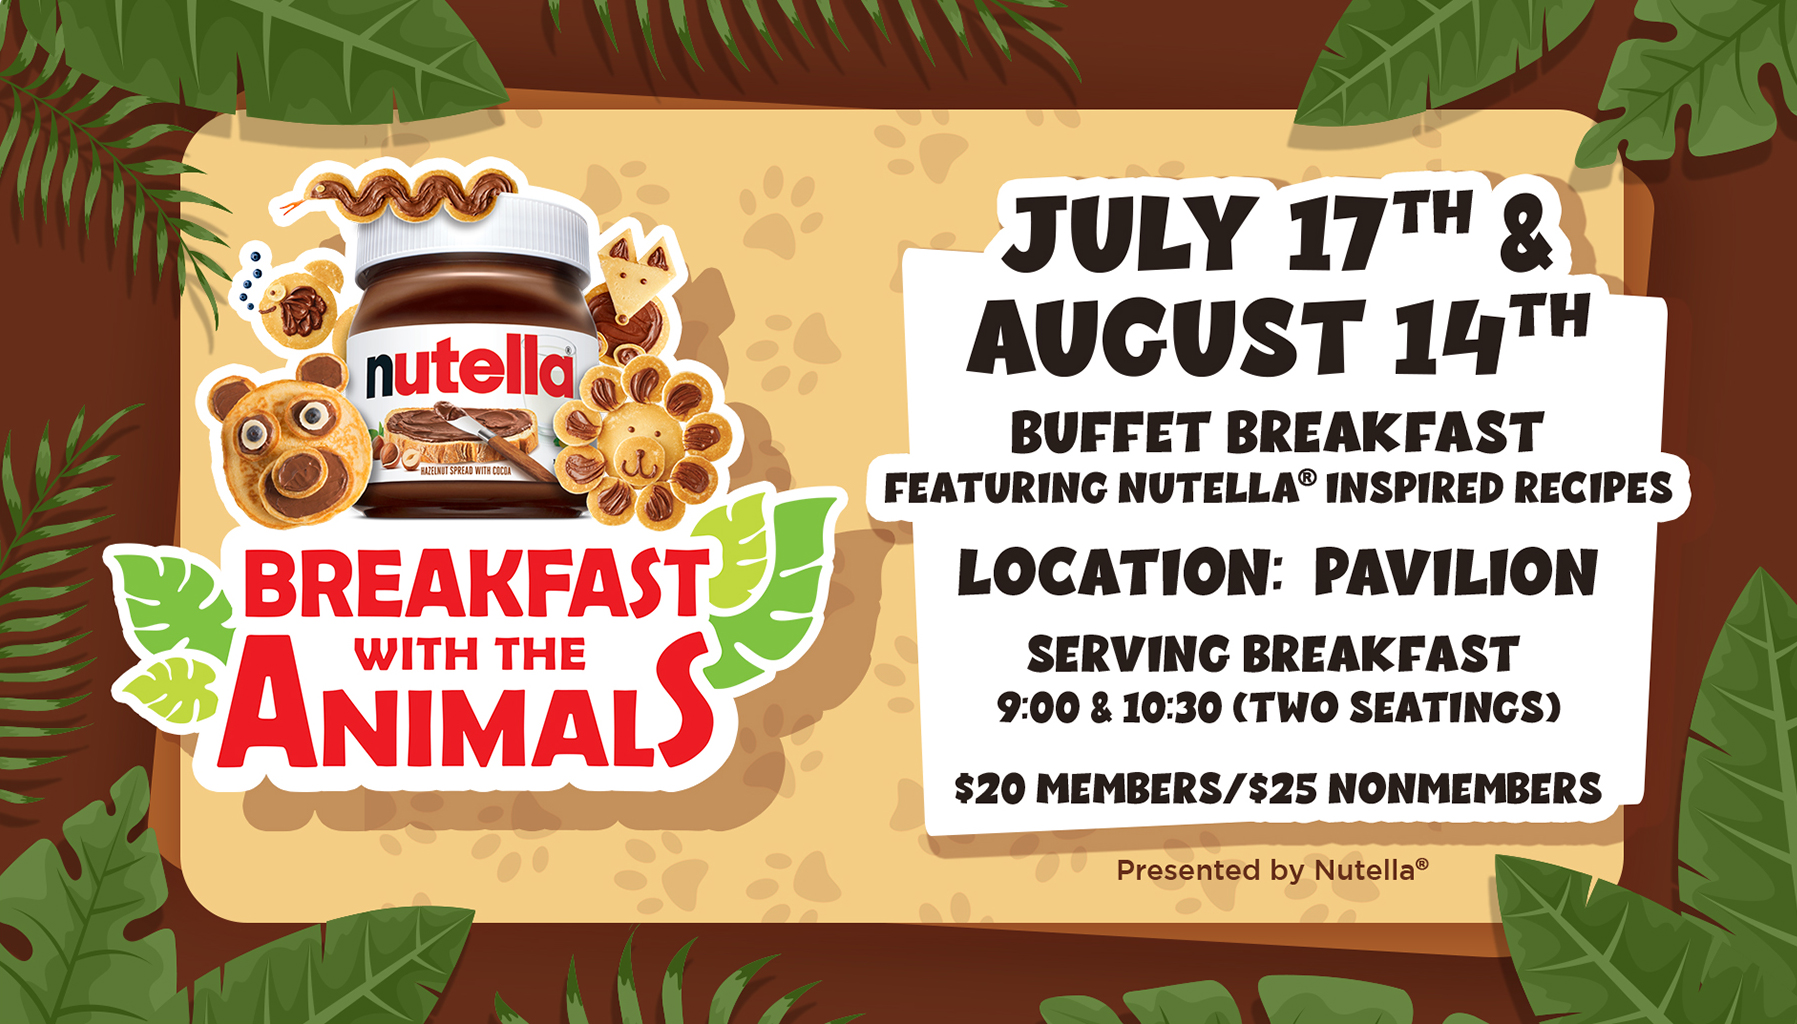 with the Animals Presented by Nutella. Check out some exciting Nutella-inspired recipes to enjoy at home! Take this fun quiz to learn more about what animals eat and enter for a chance to win a behind-the-scenes tour for four.